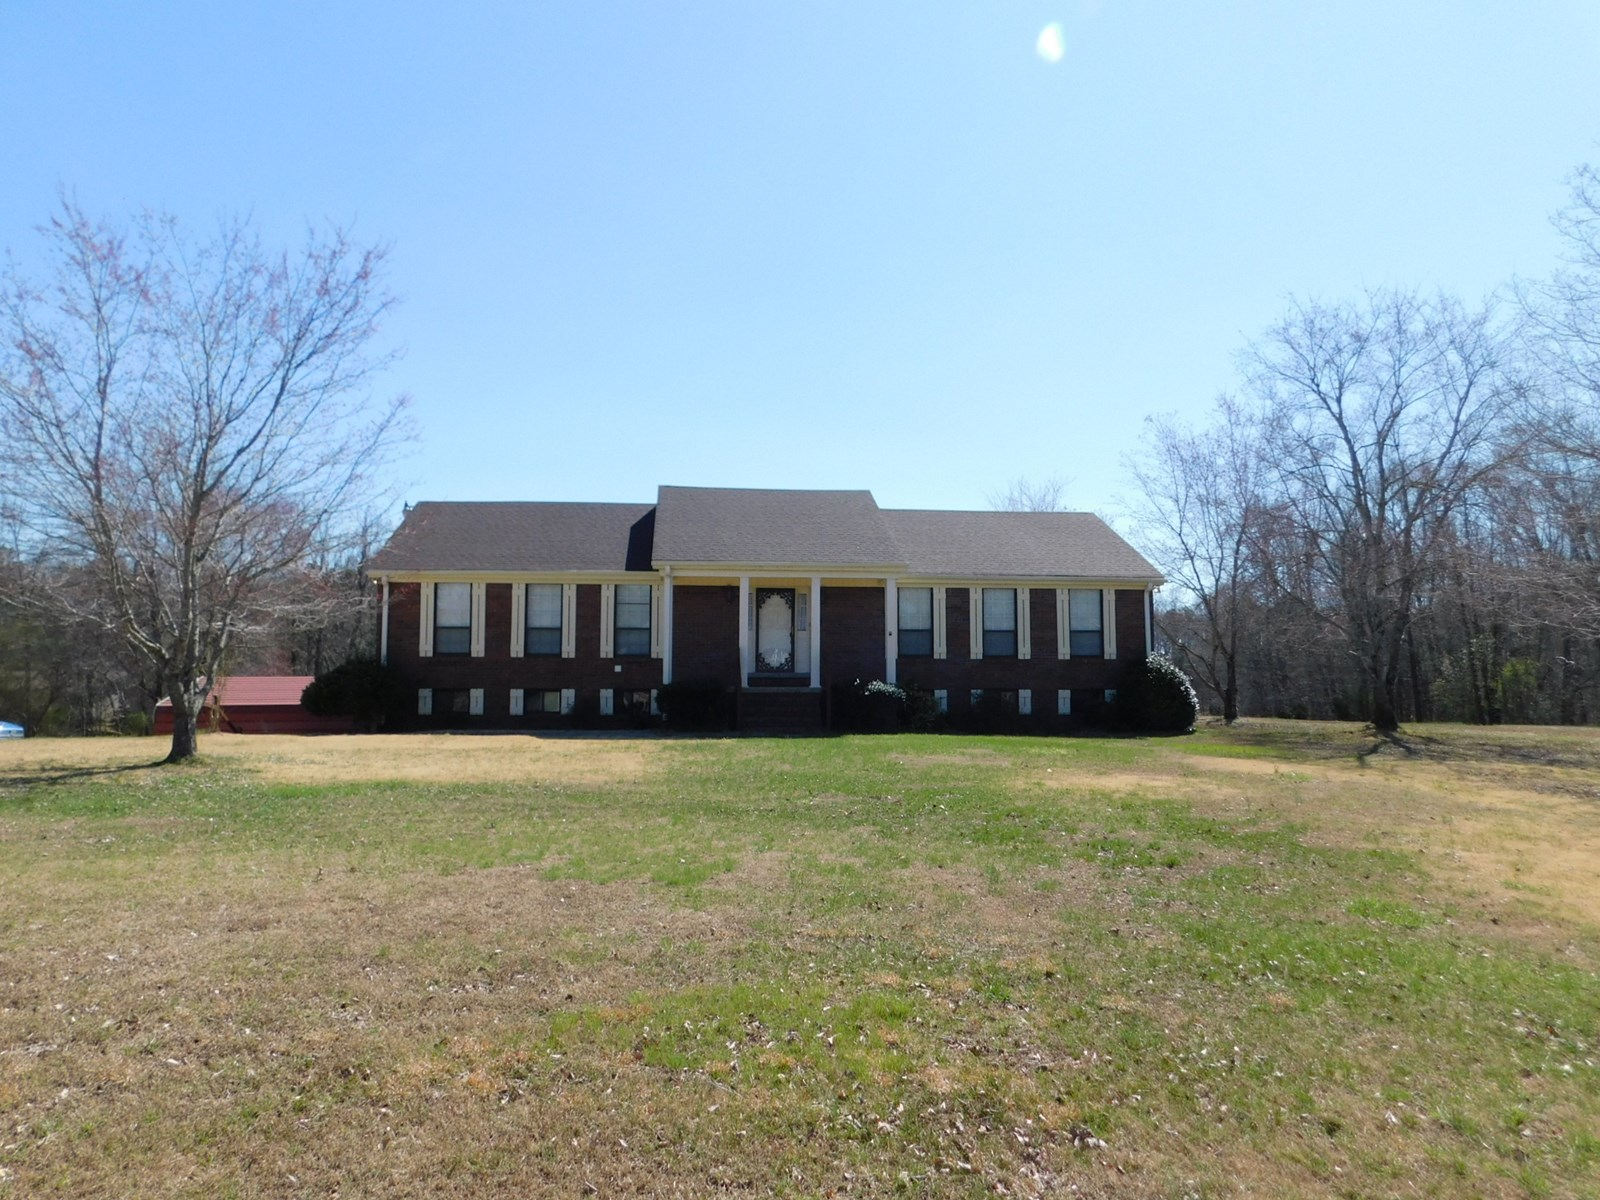 5 BEDROOM HOME WITH ACREAGE & BASEMENT FOR SALE IN TN